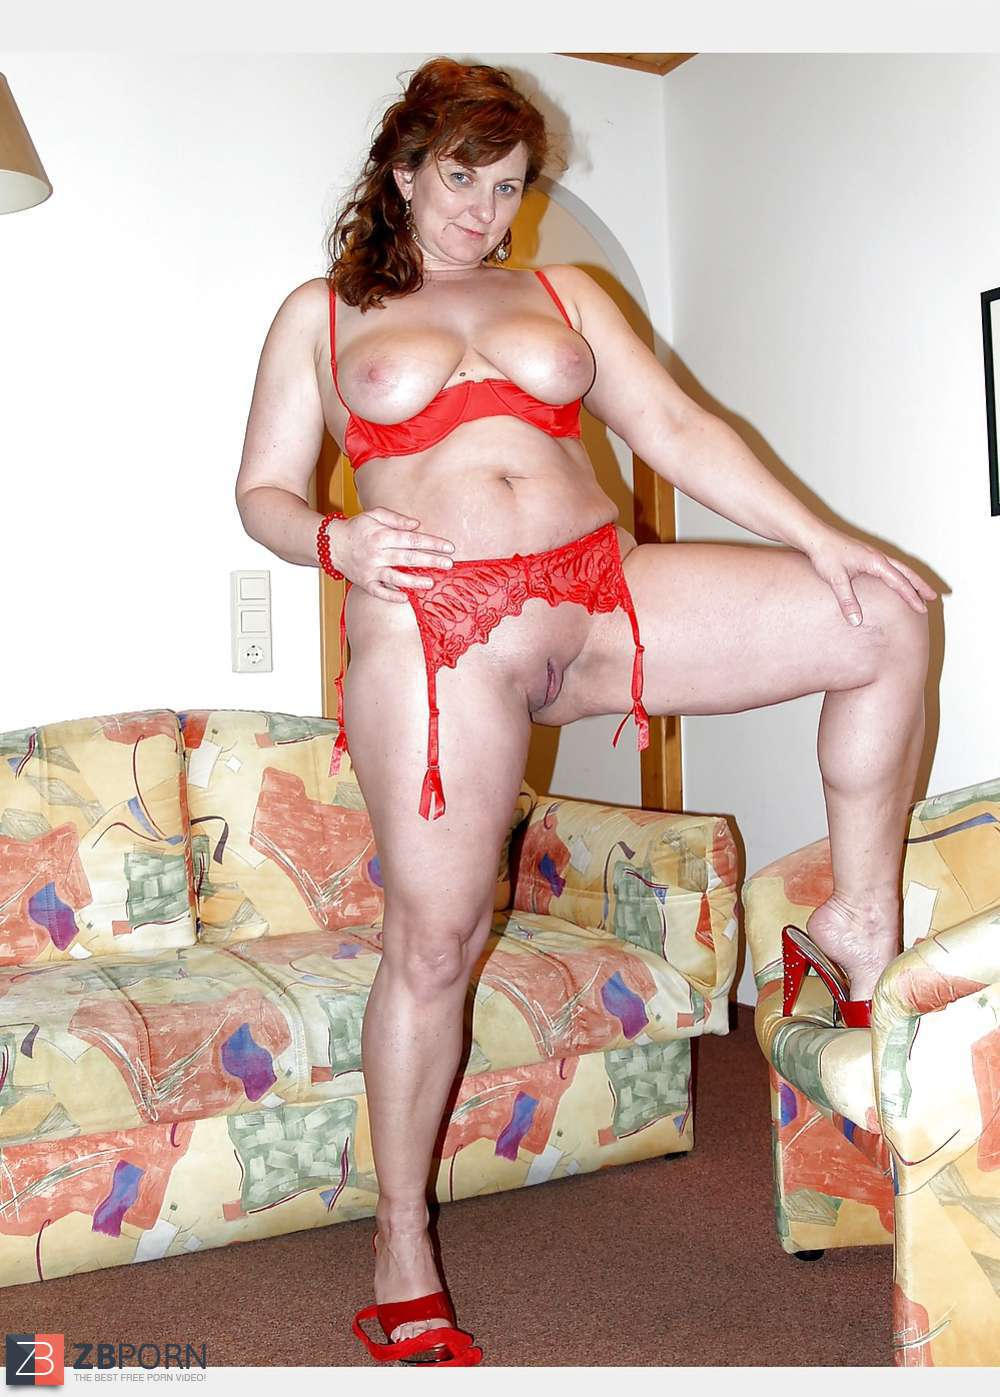 Mature Old Granny Gigantic Chubby Inexperienced Reife Alte